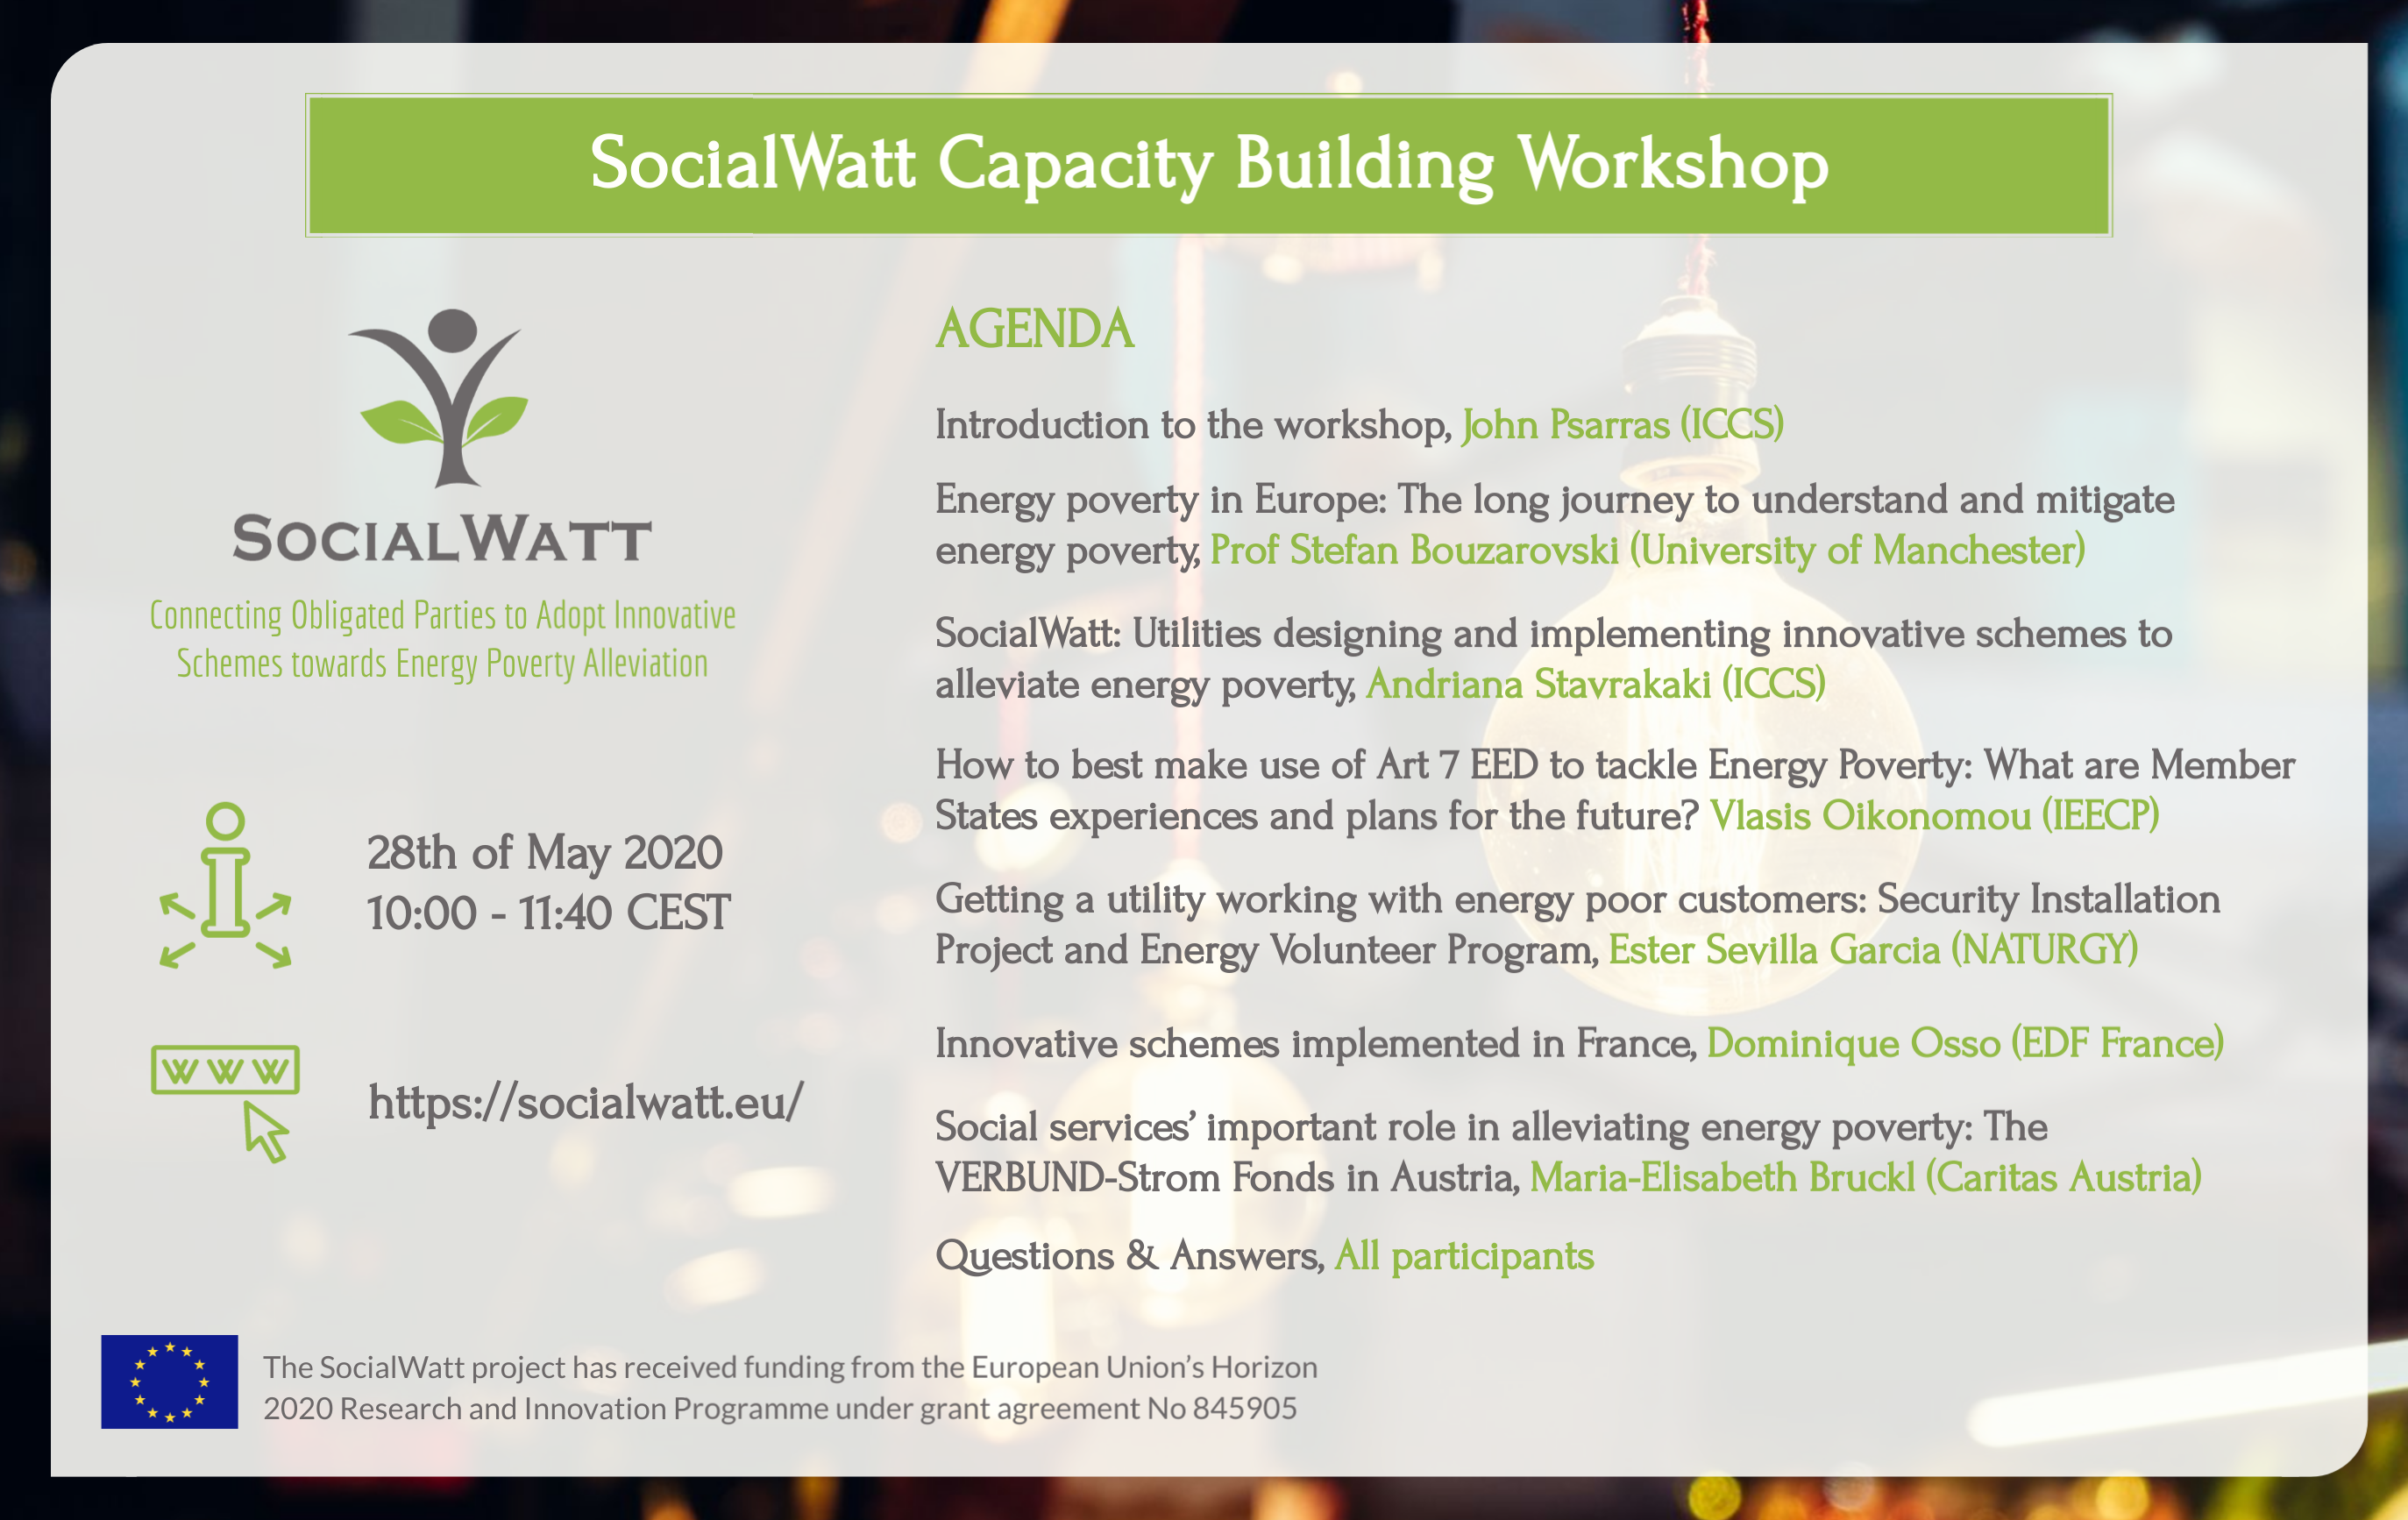 SocialWatt Capacity Building Workshop